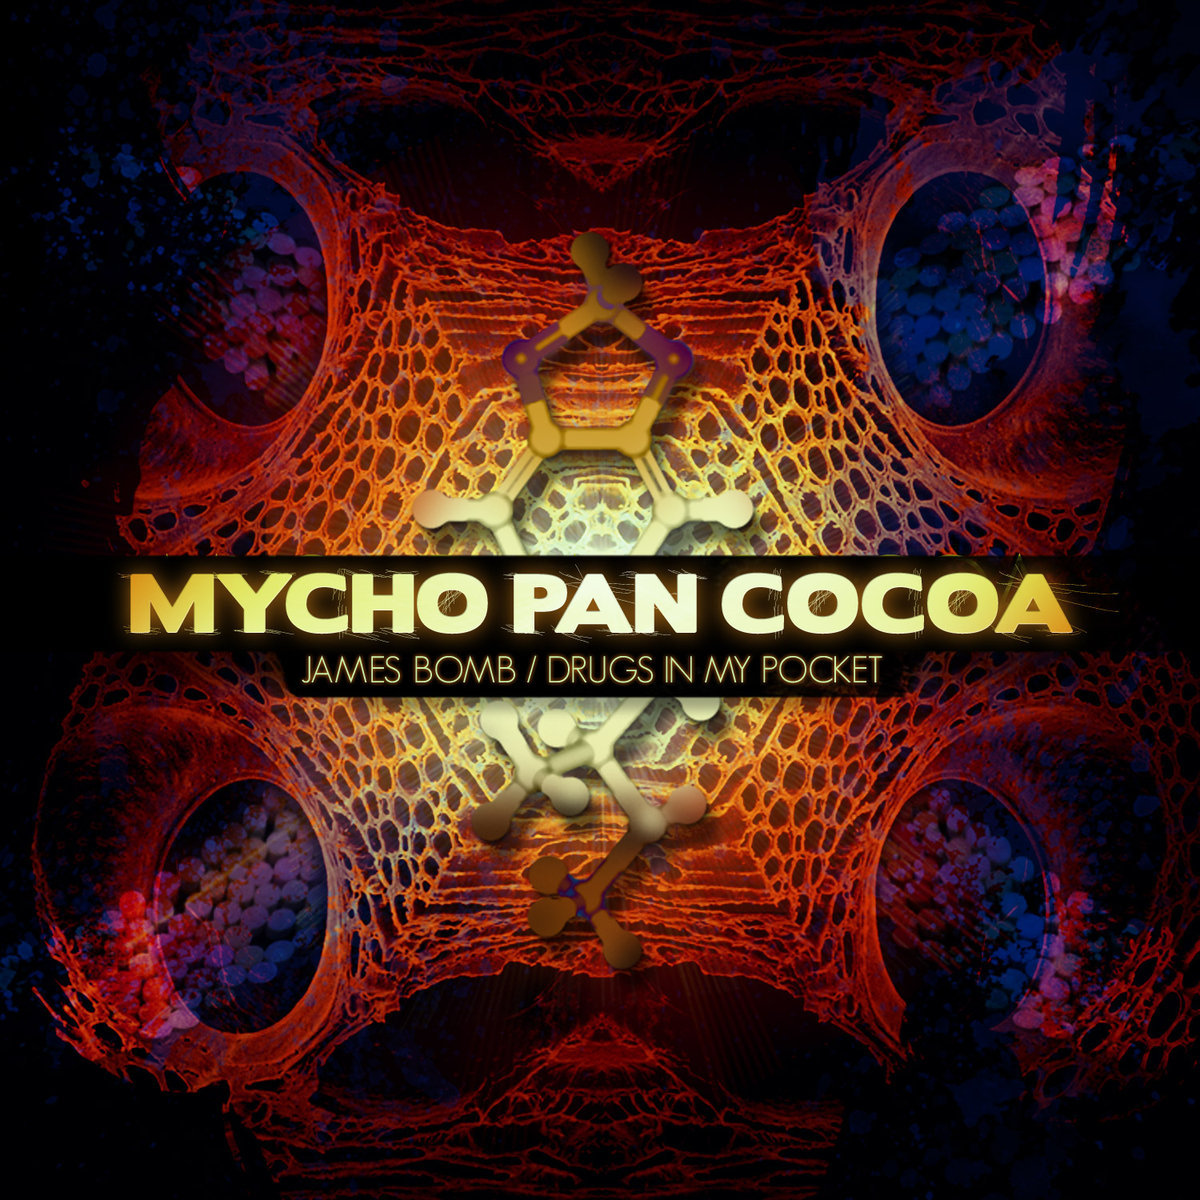 Mycho Pan Cocoa - Drugs in my Pocket (6Blocc Remix) @ 'Drugs in my Pocket' album (electronic, dubstep)